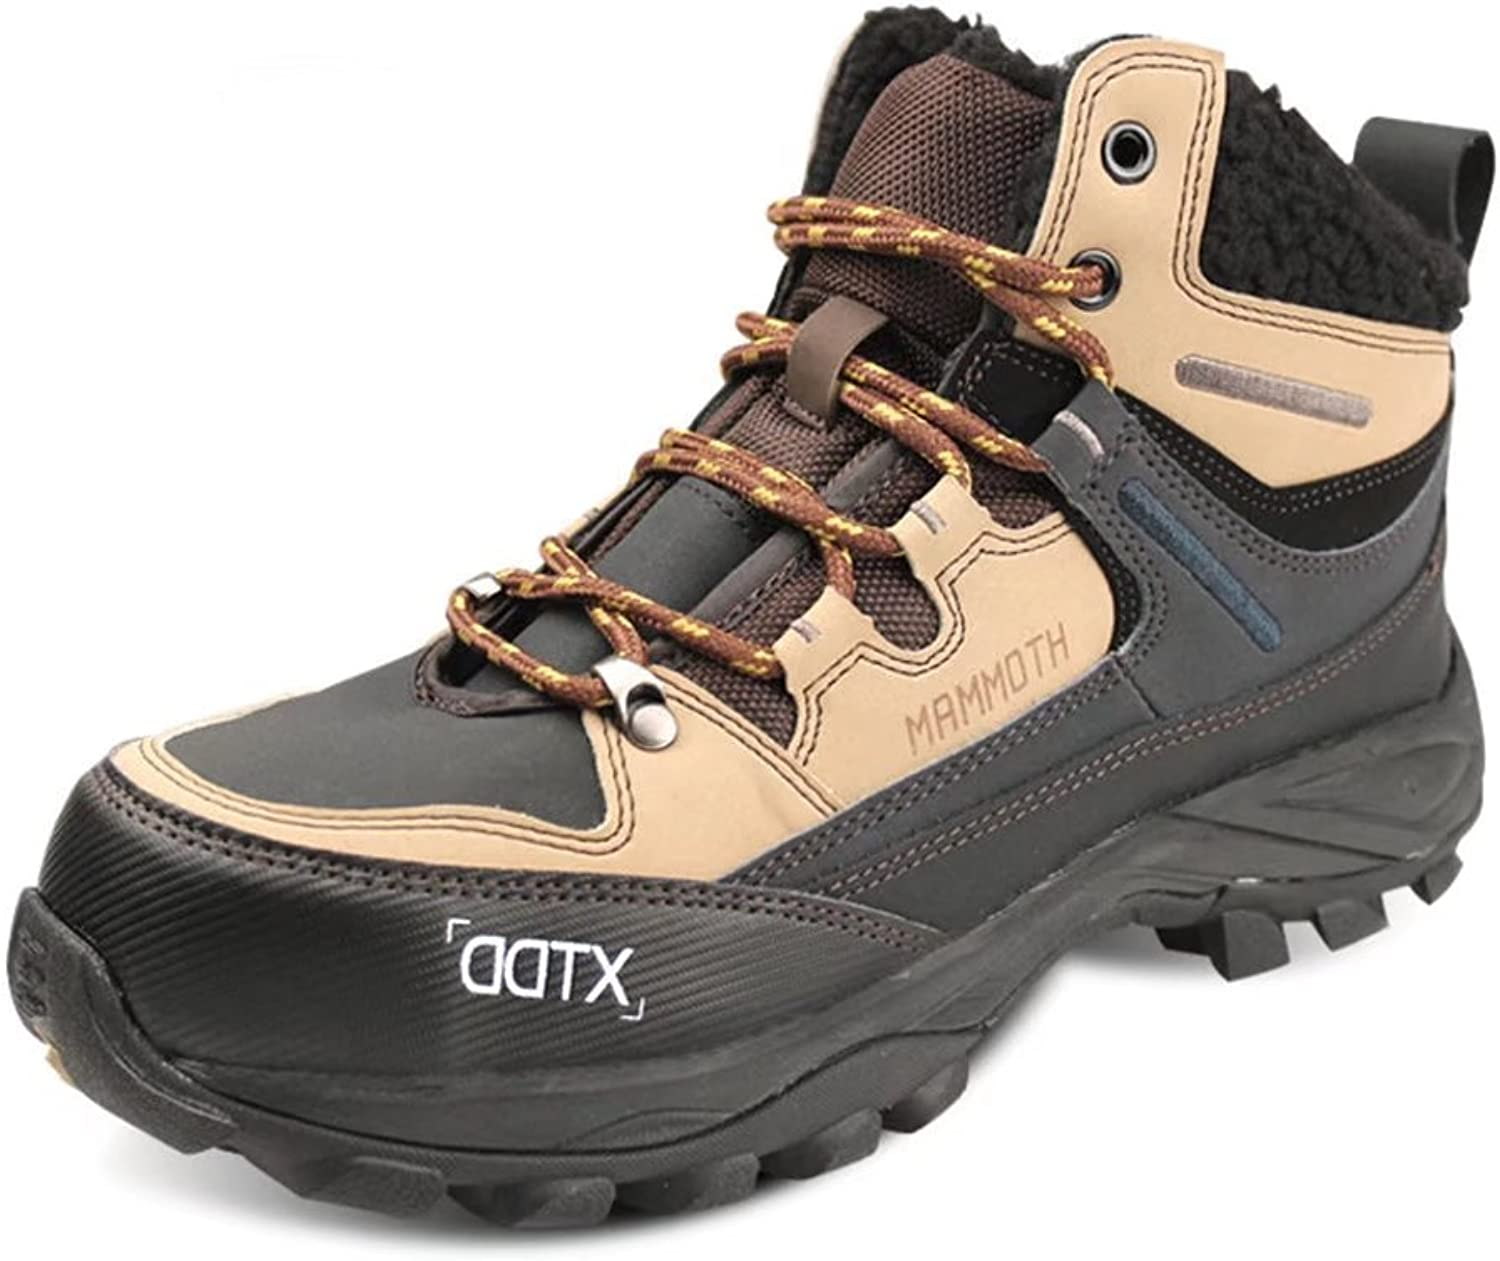 DDTX Unisex-Adults' Steel Toe Safety shoes and High Cut Winter Warm Safety Boots 6-9.5UK Brown